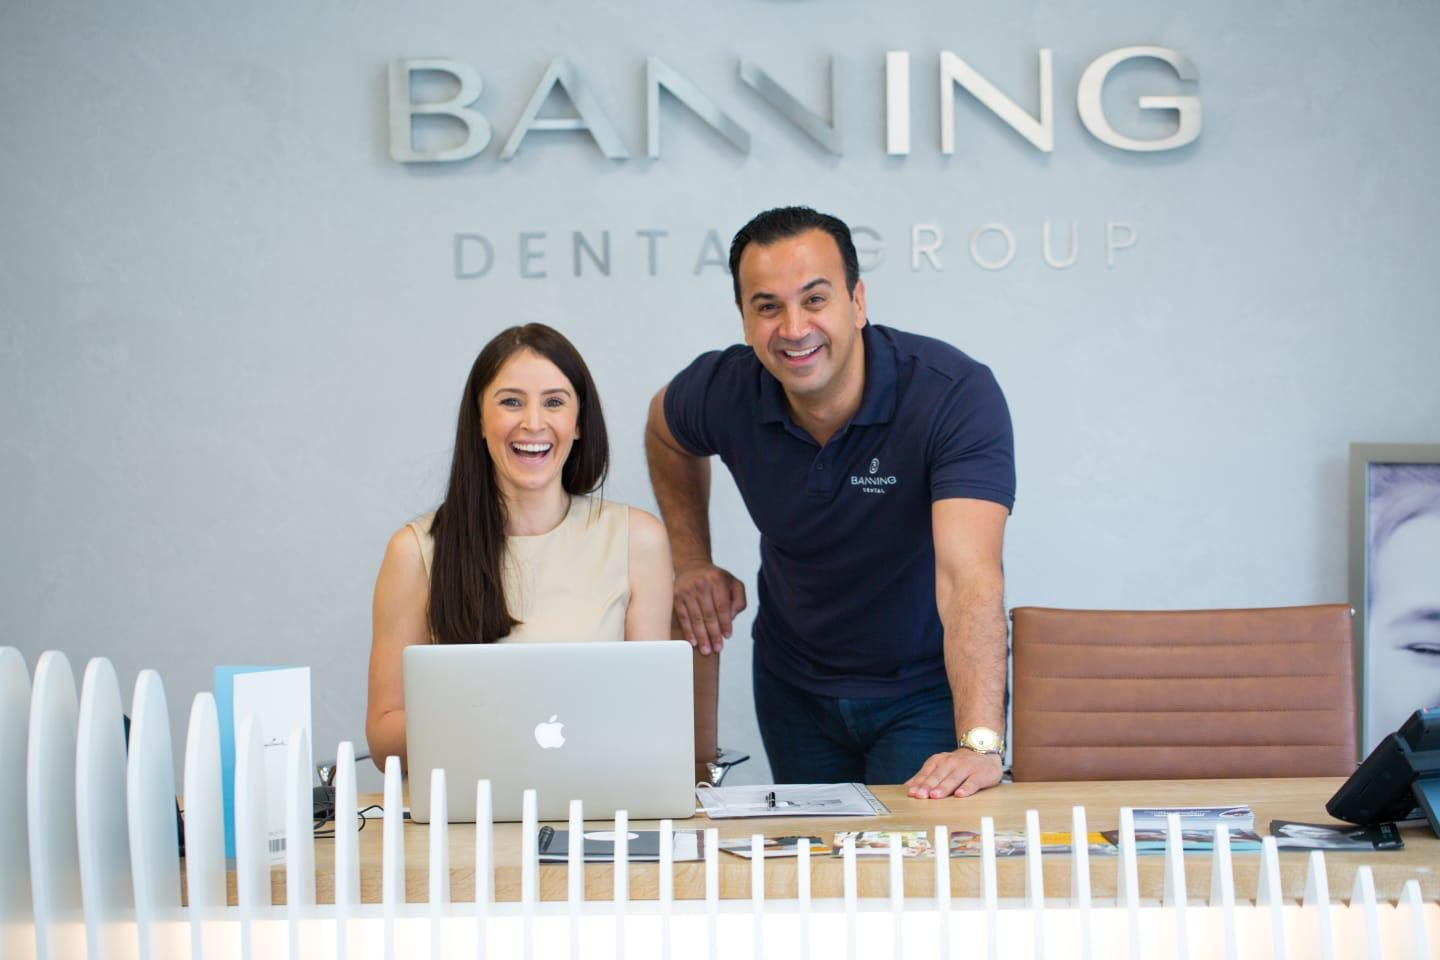 Team at Banning Dental Group smiling at the reception desk as they enjoy their new commercial interior design & fit-out